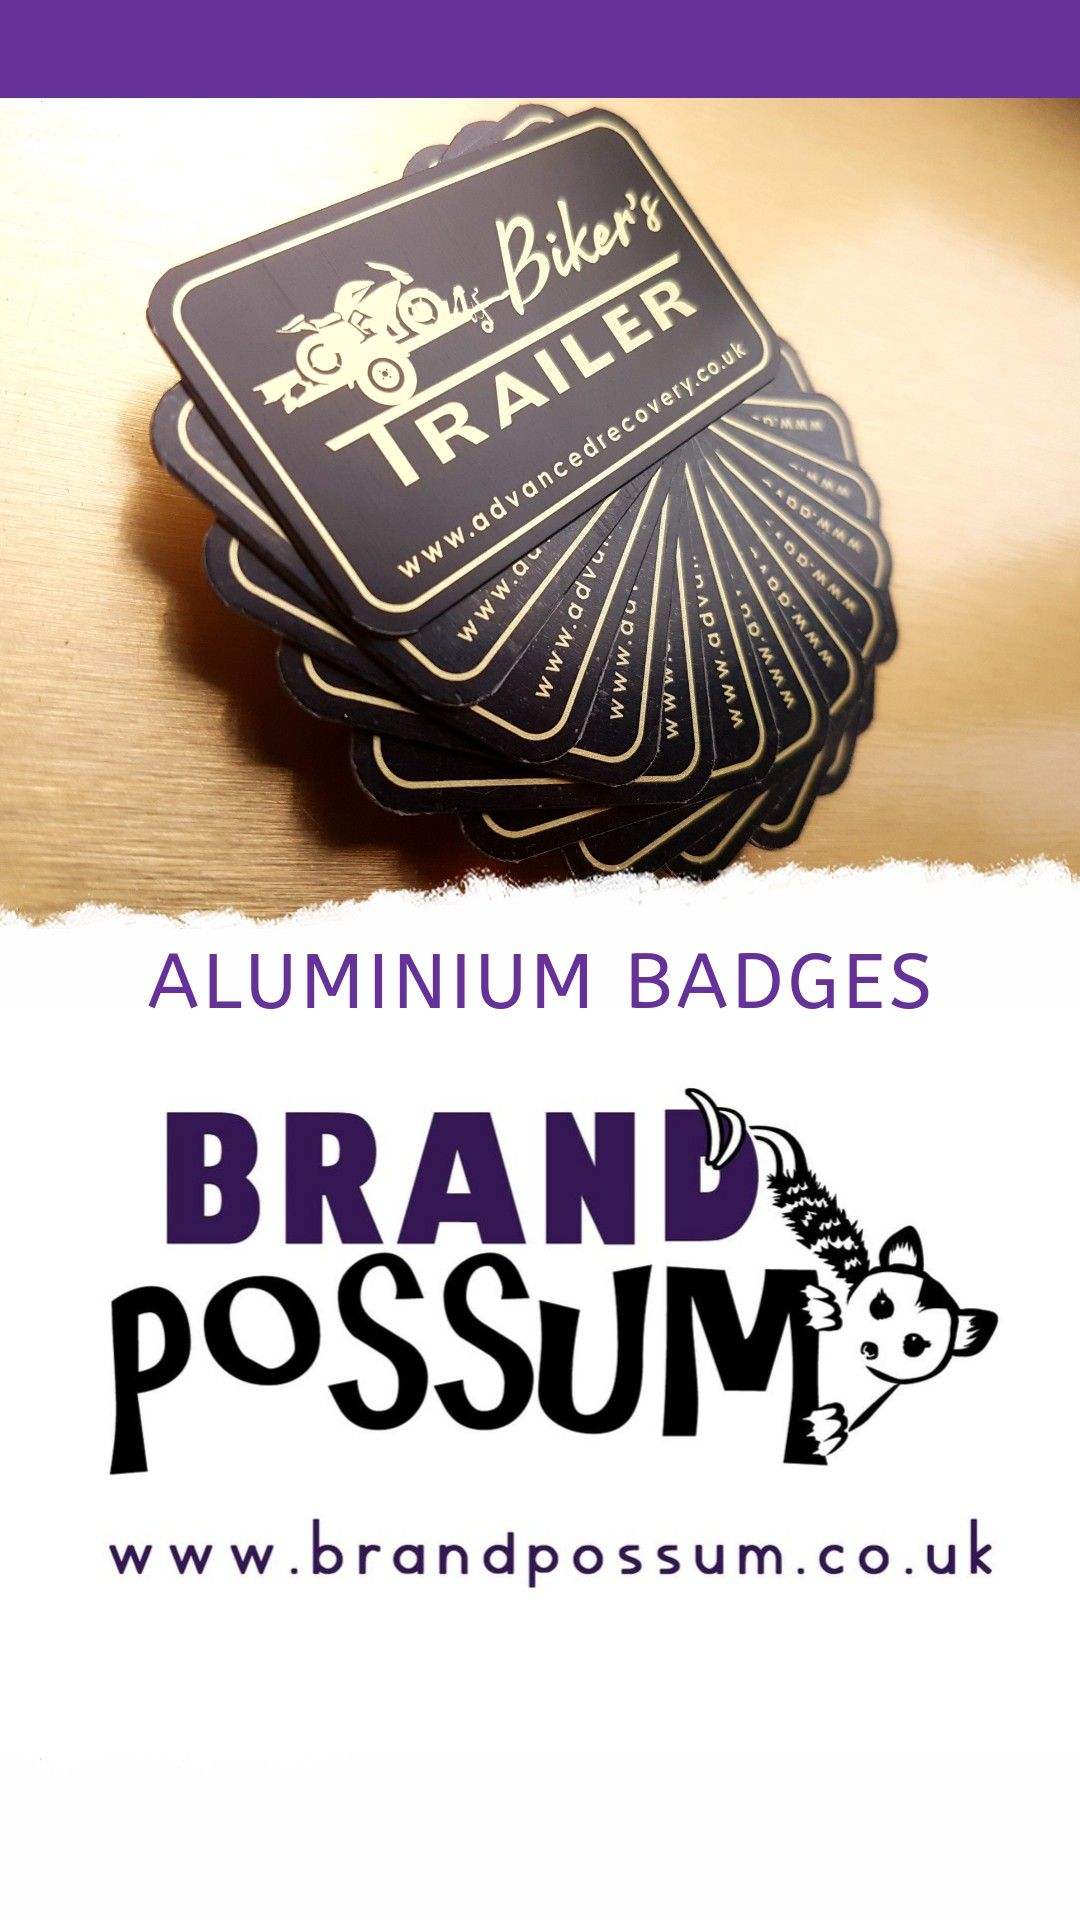 Aluminium badges designed, manufactured & hand delivered by Brand Possum to the lovely @advanced_recovery_systems - Give them a follow on insta...go on, it is #friday! 😉 www.brandpossum.co.uk . . . #BrandPossum #branding #badge  #aluminium #marketing #creativeagency #design #motorcycle #bikes #trailer #manufacturing #friday #instagram #motivation #suffolk